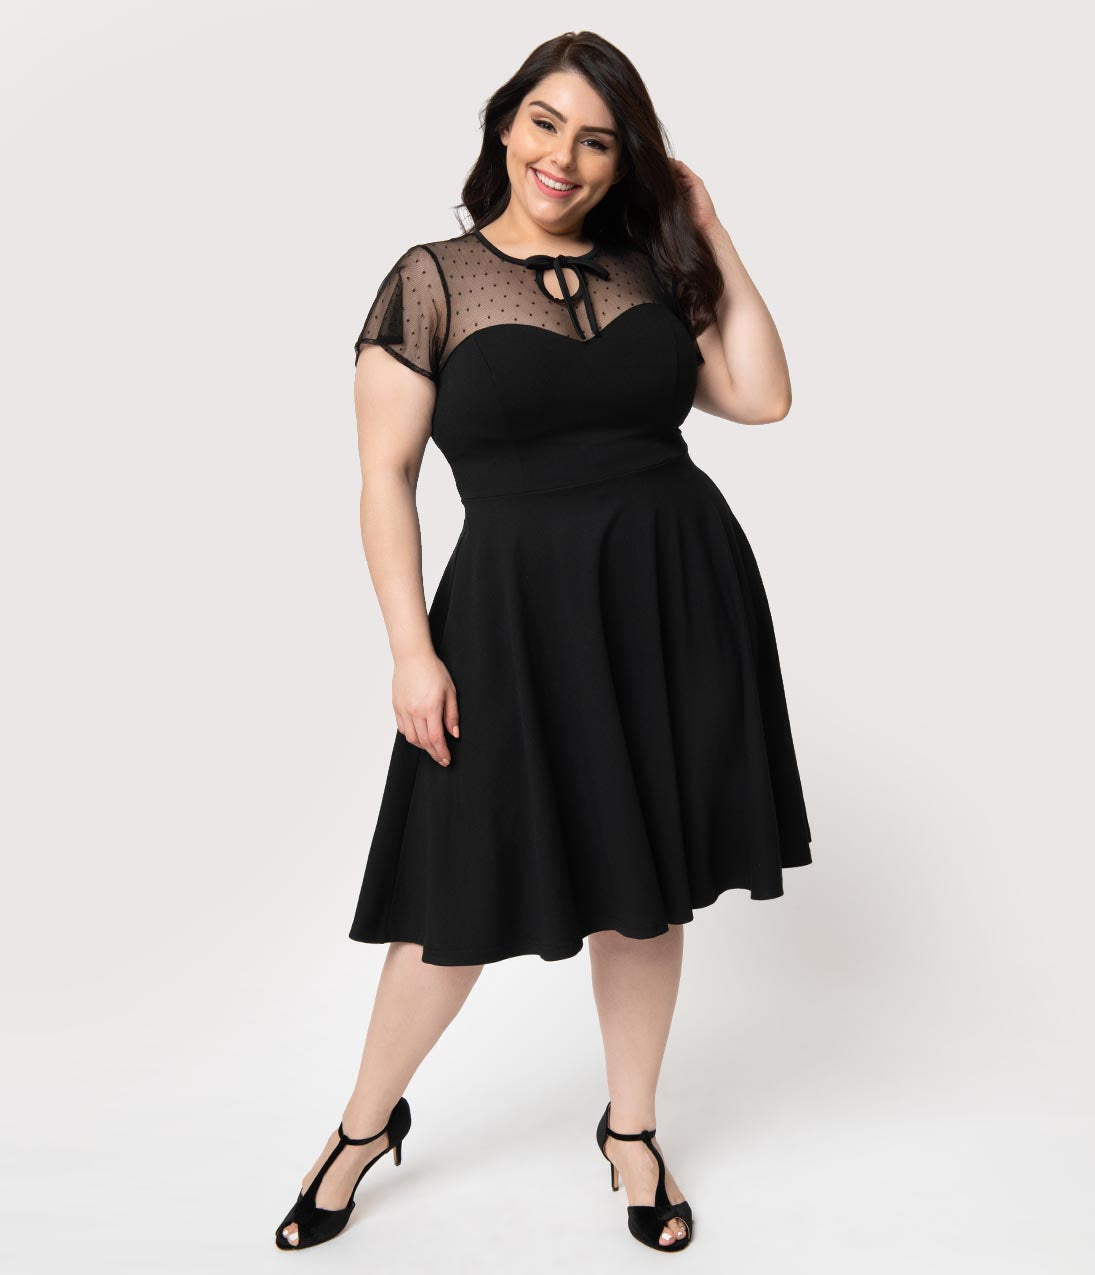 1940s Fashion Advice for Short Women Unique Vintage Plus Size 1940S Style Black Swiss Dotted Mesh Heather Midi Dress $98.00 AT vintagedancer.com